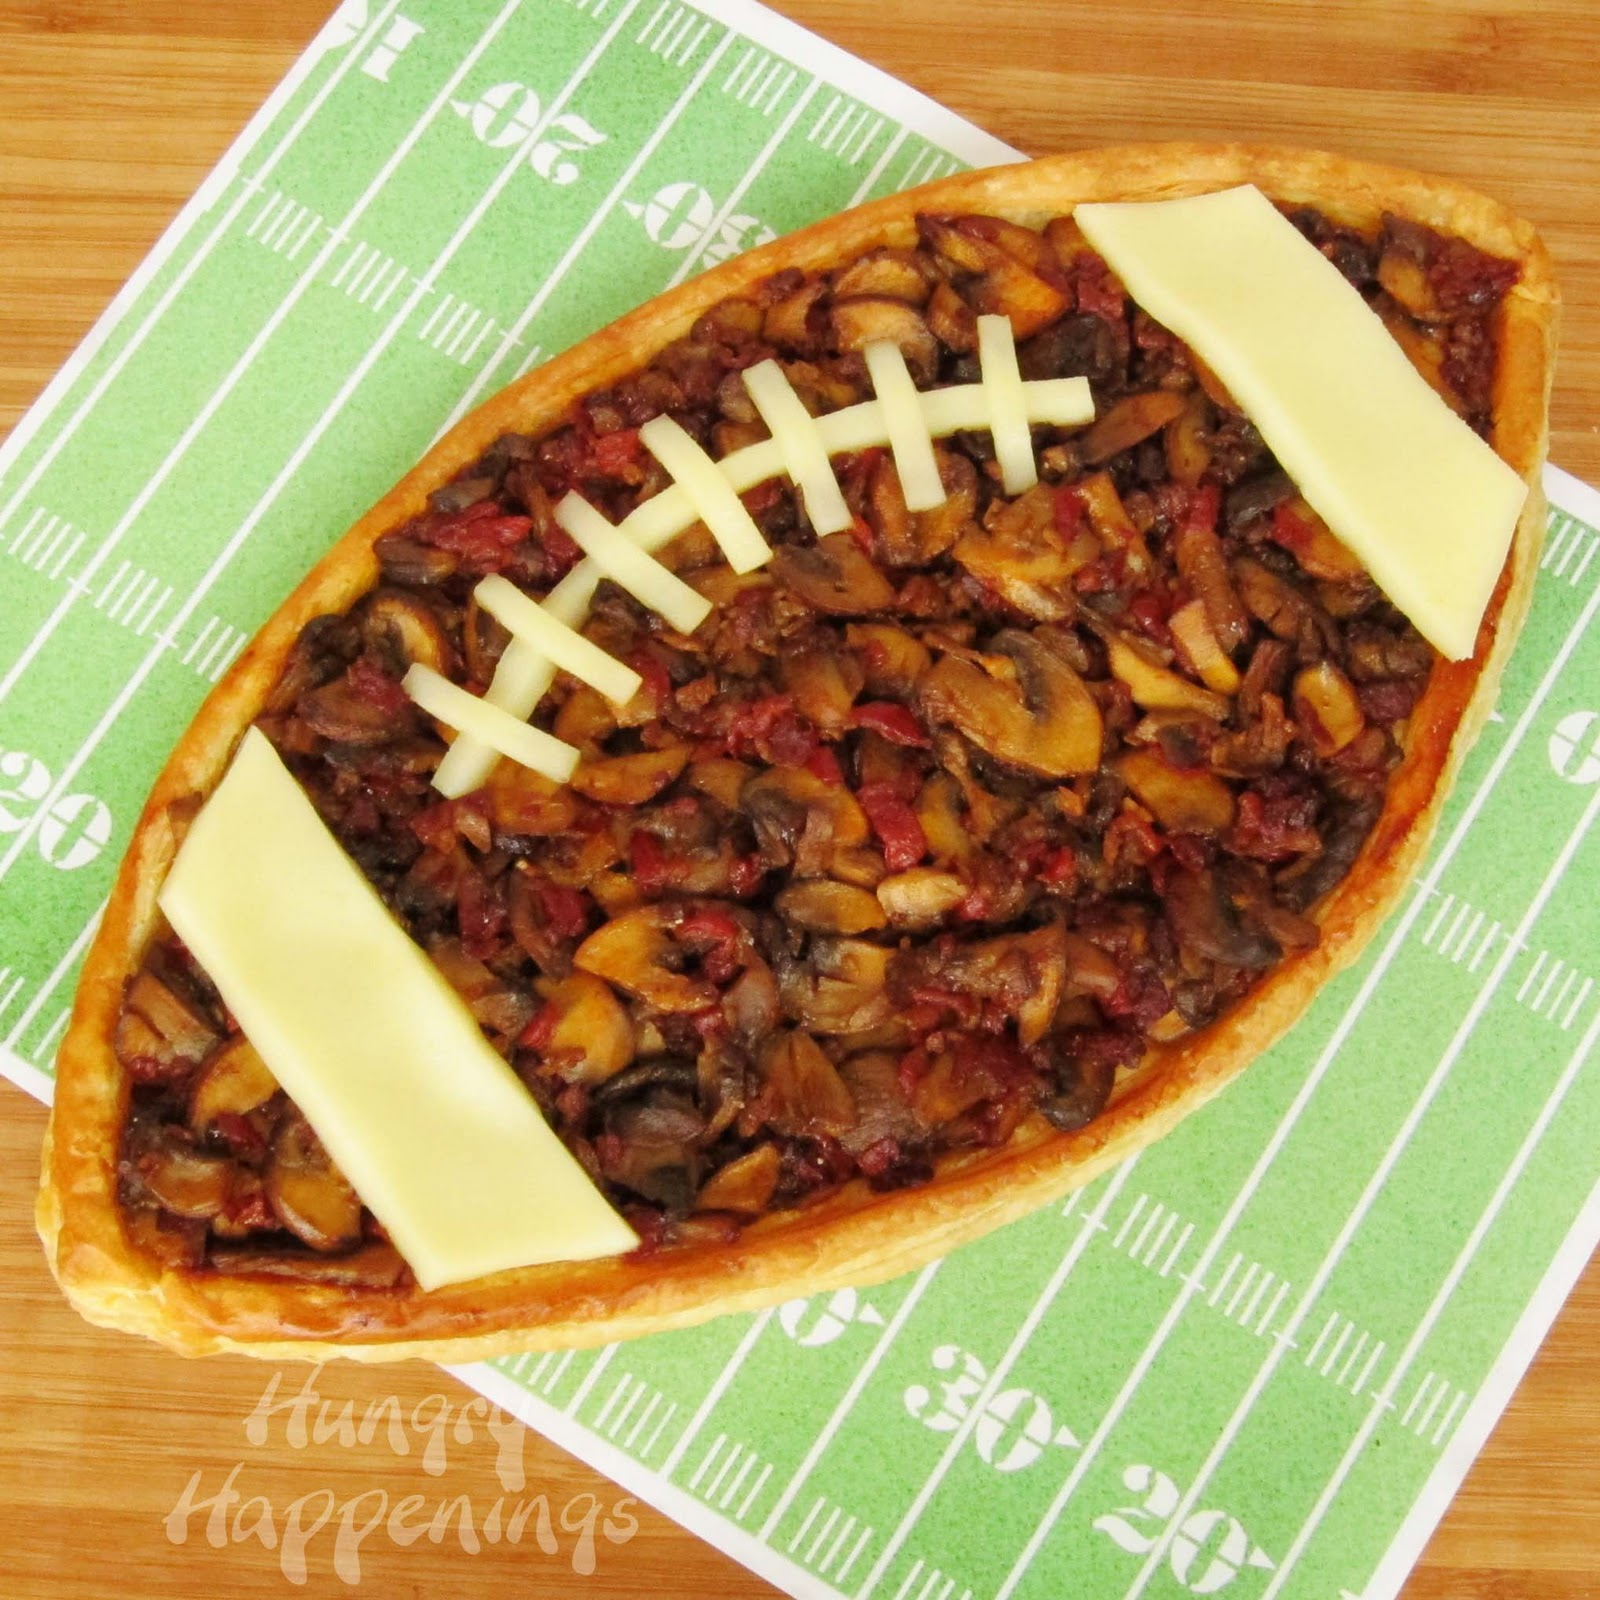 Madeira Mushroom Filled Football Tart Super Bowl Food Hungry